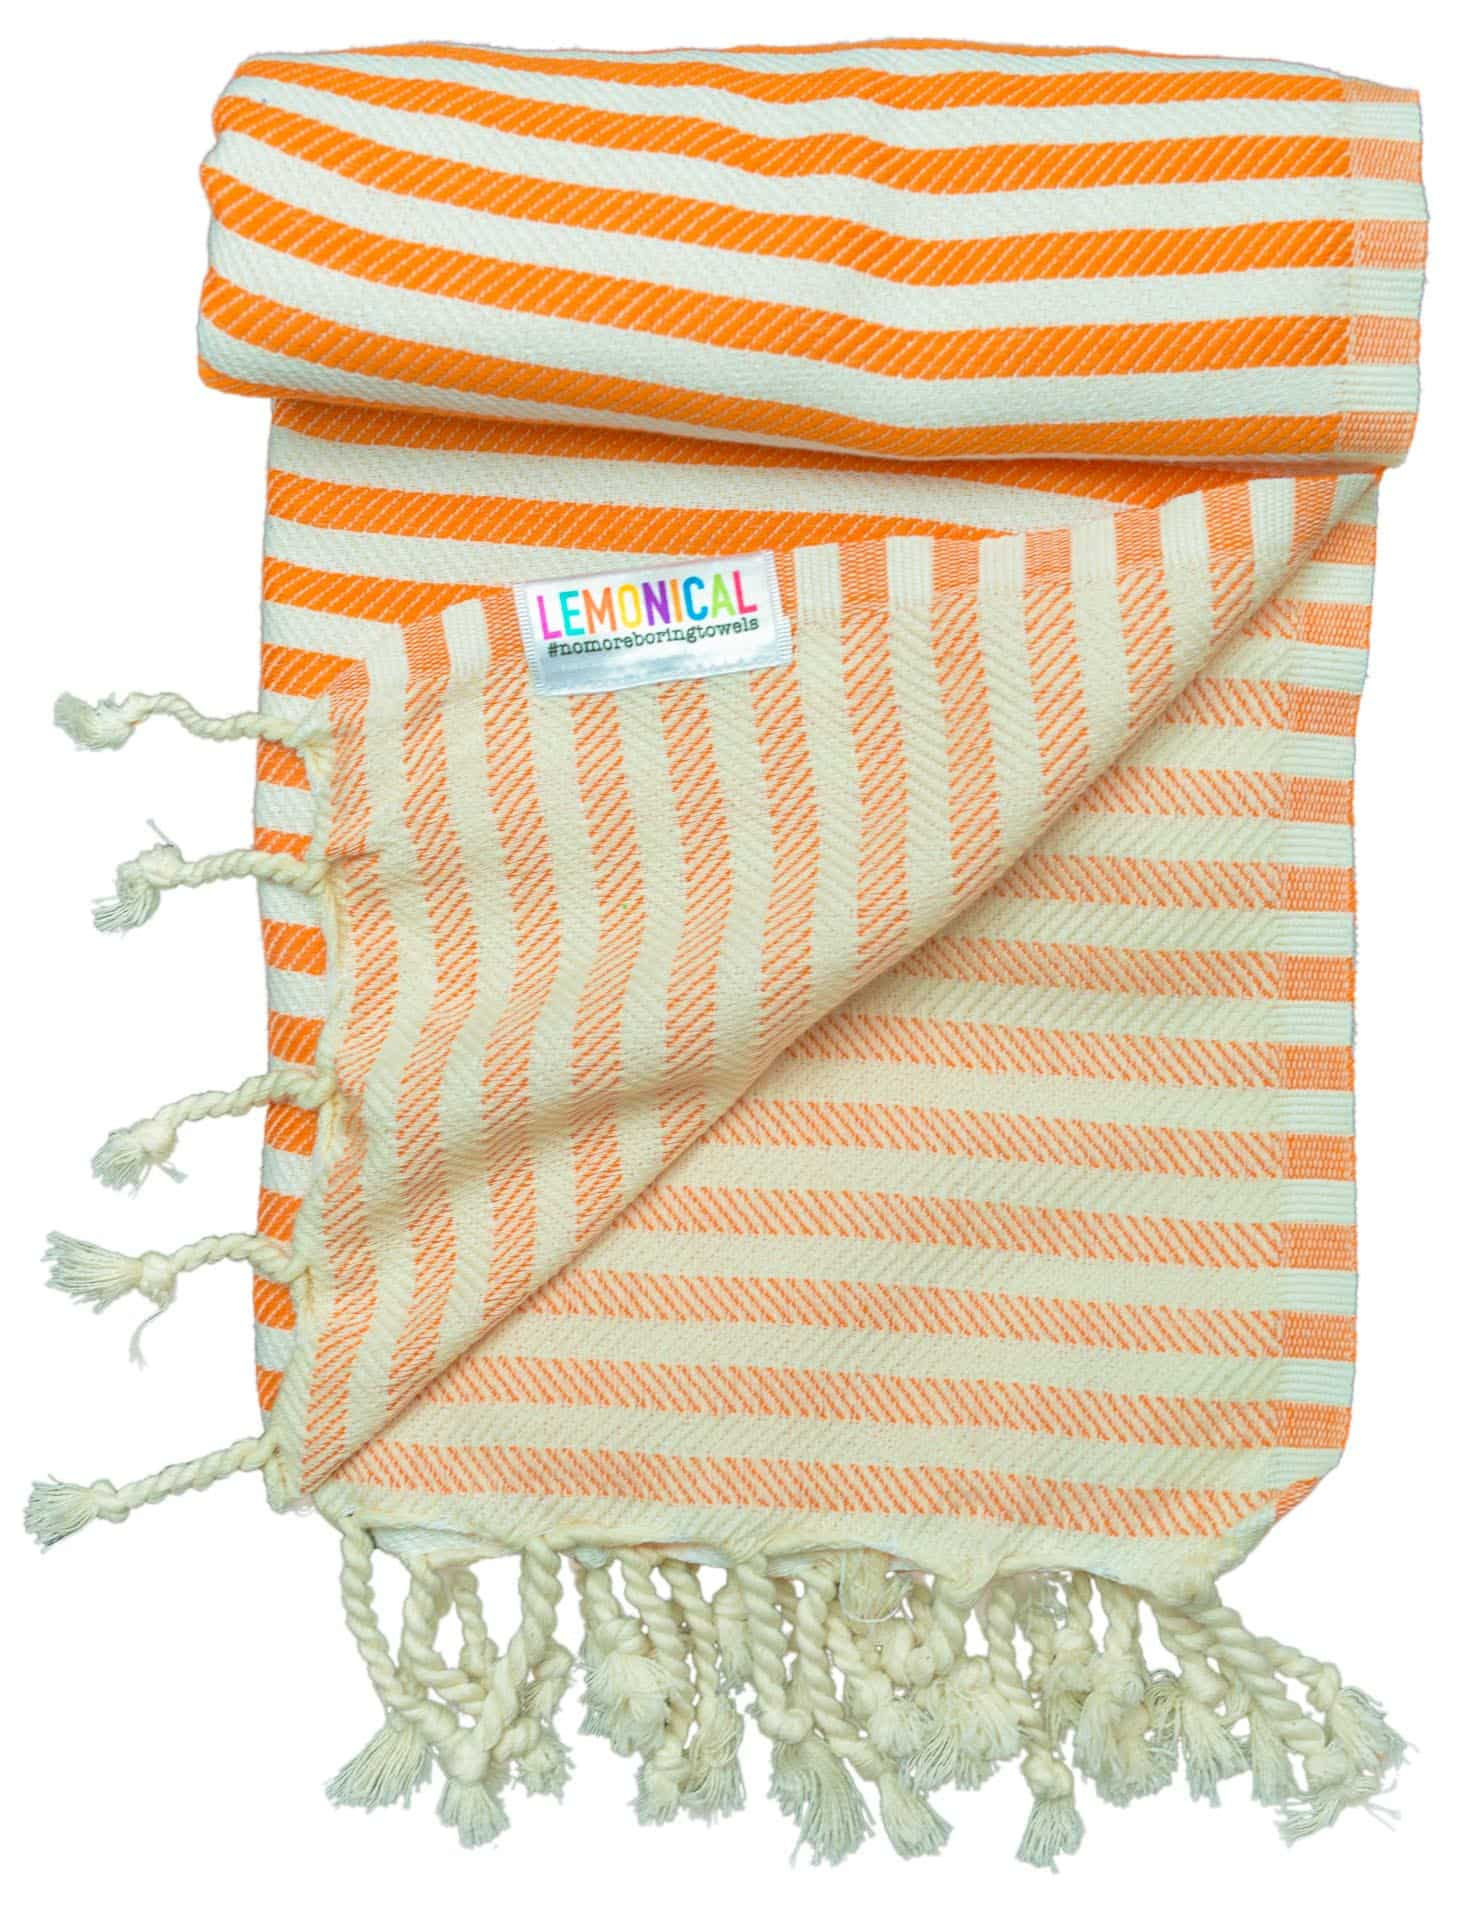 NAUTIC-ORANGE-Towel-Lemonical-3